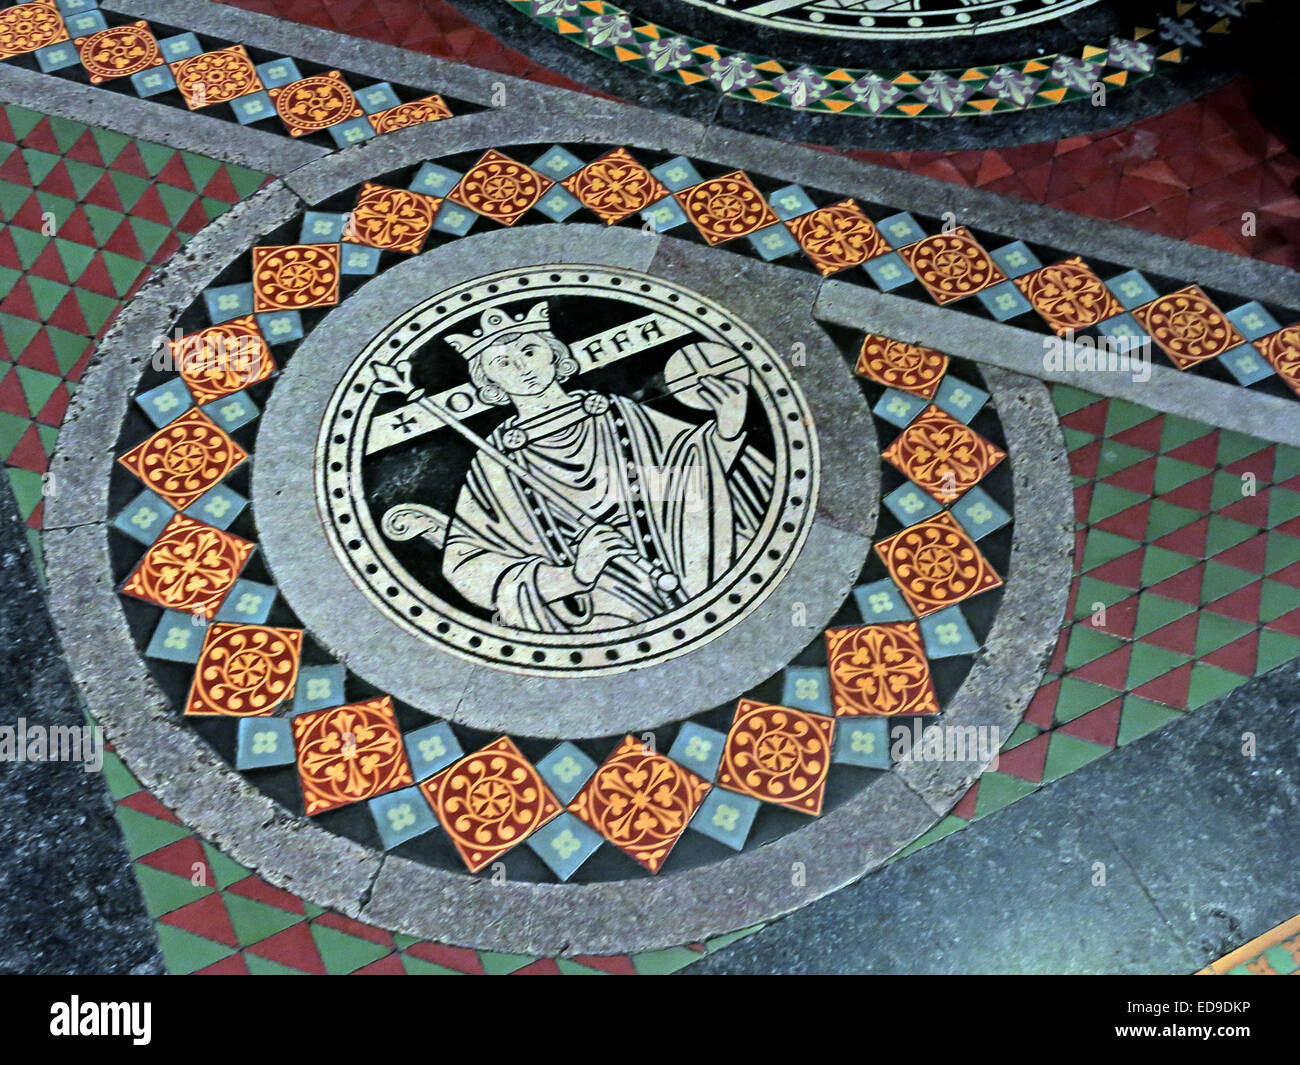 Tiles on floor at Lichfield cathedral, Staffordshire, England UK WS13 7LD leading to the high altar - Offa King - Stock Image